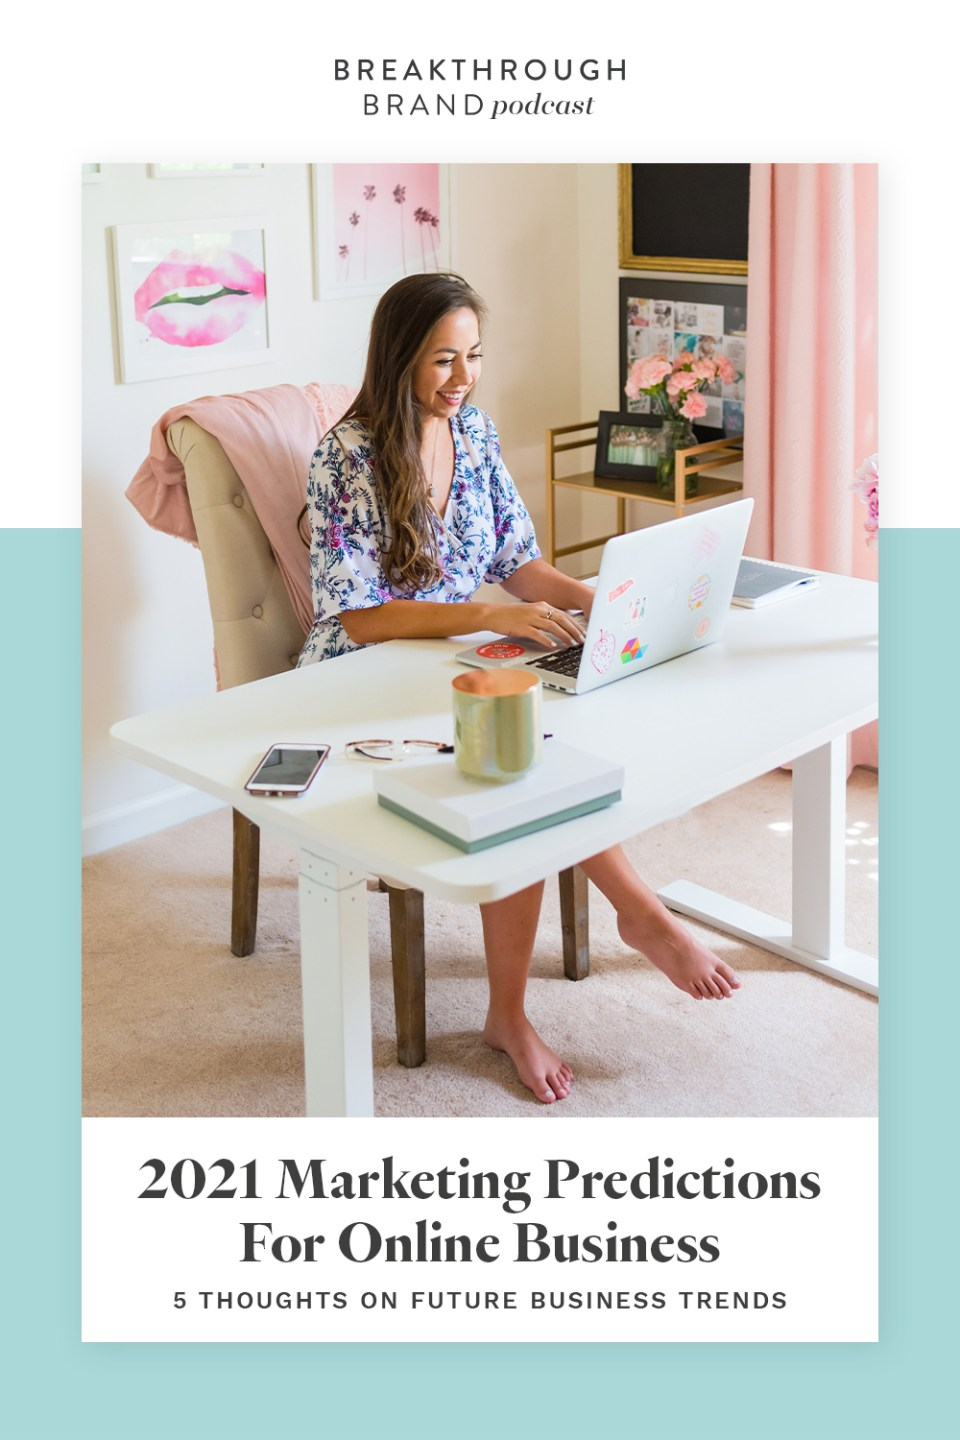 Listen to Elizabeth McCravy's predictions for online business and marketing in 2021 on the Breakthrough Brand Podcast.